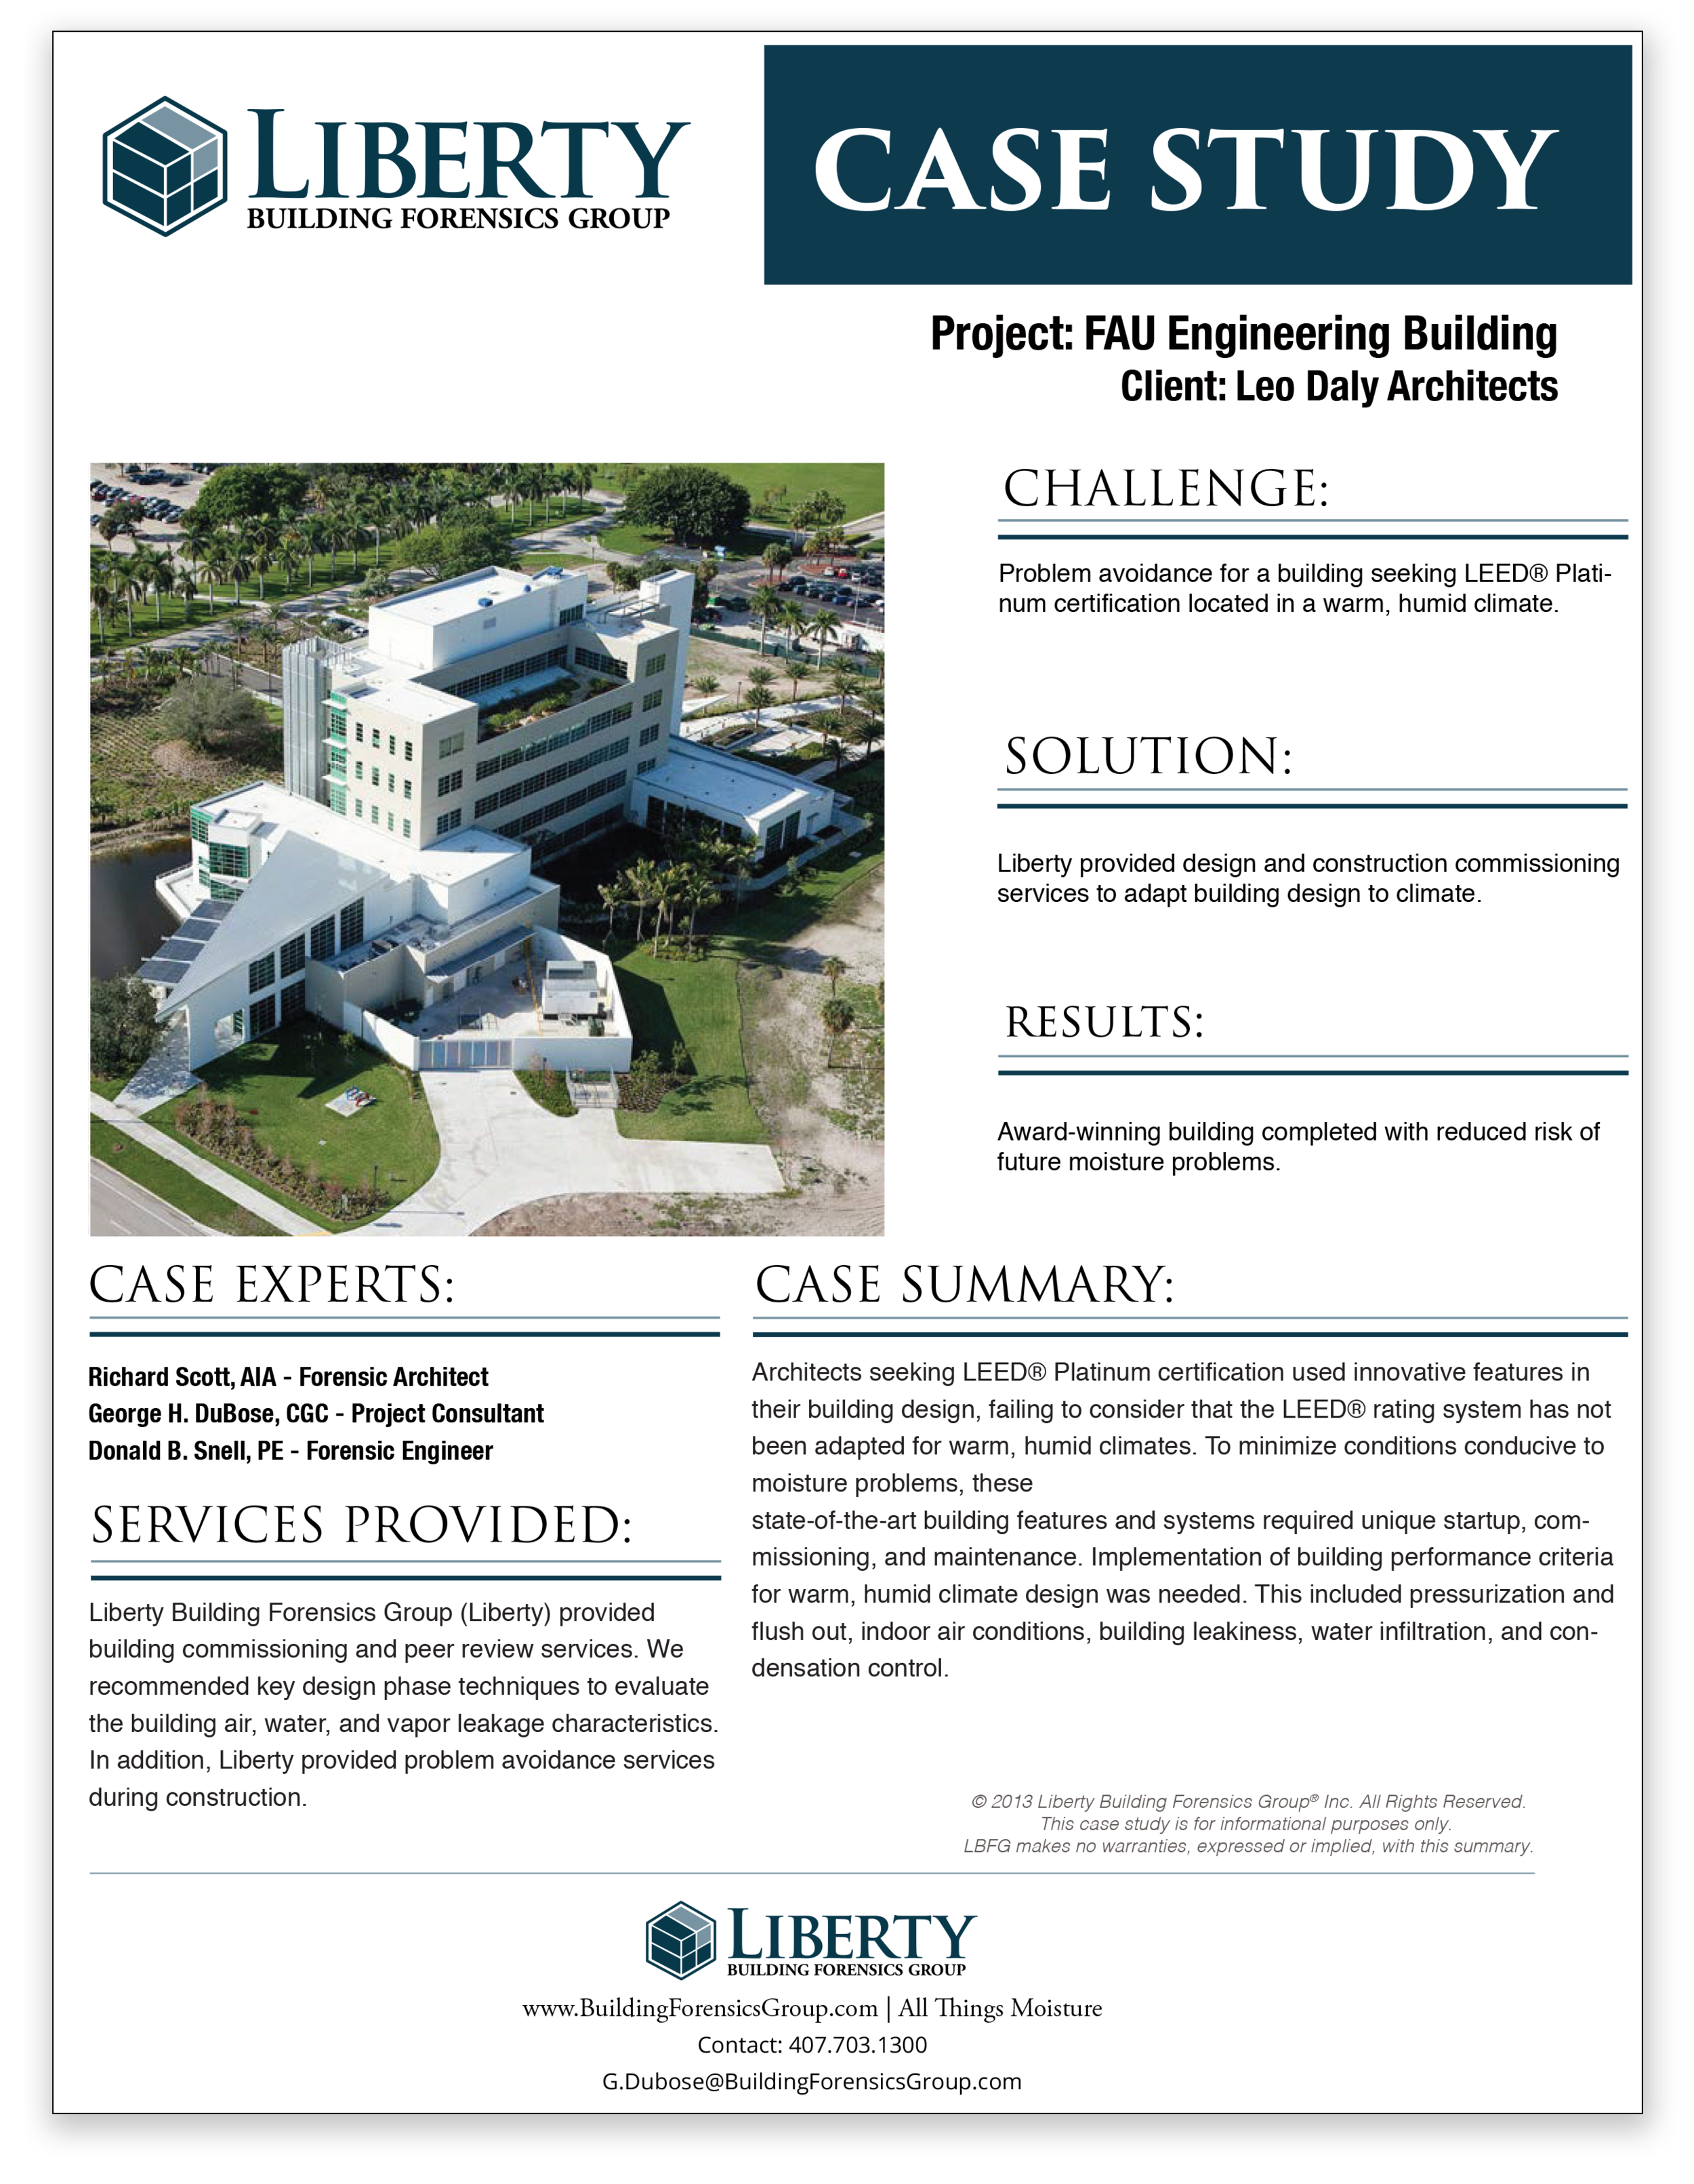 201309 FAU Engineering Building@2x.png